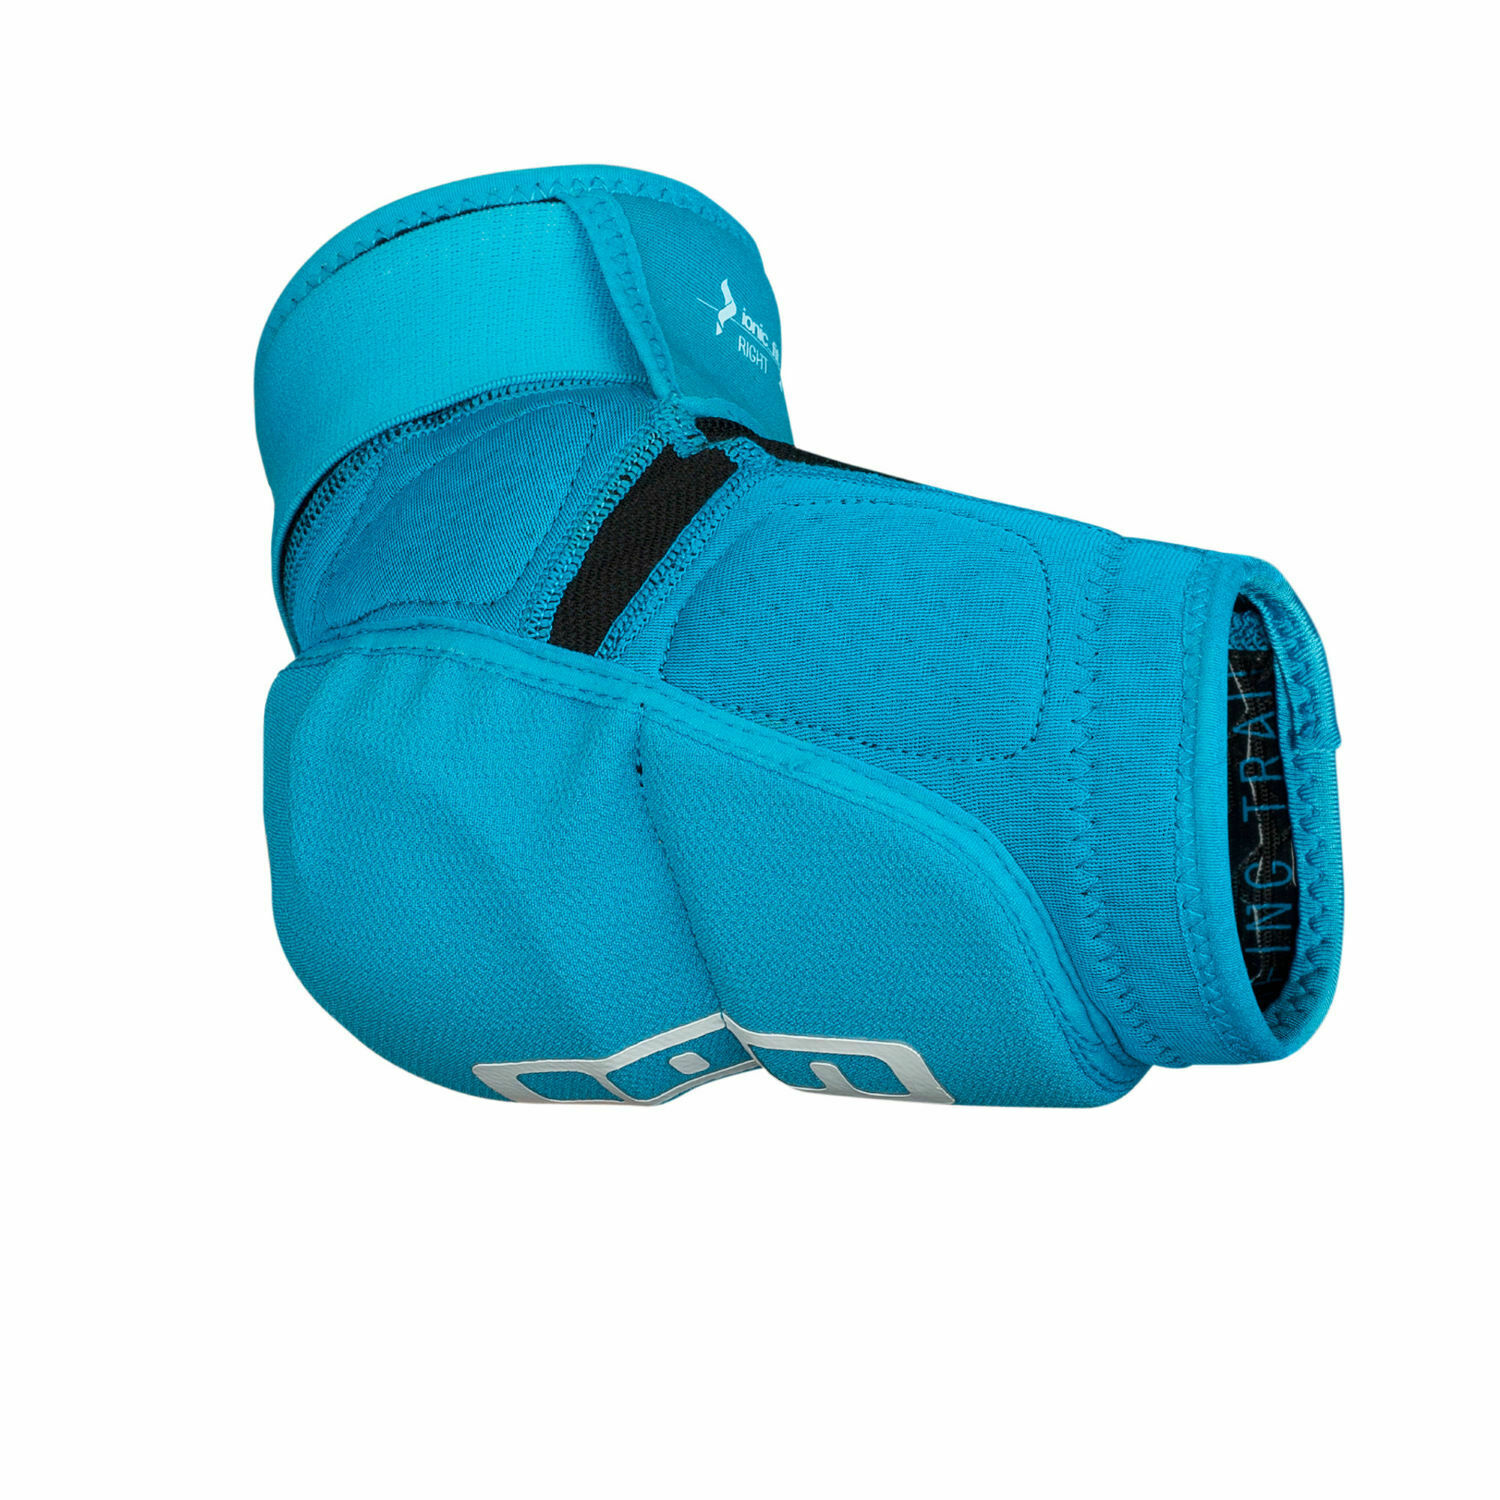 ION E-Pact Elbow Pads - Blau Large